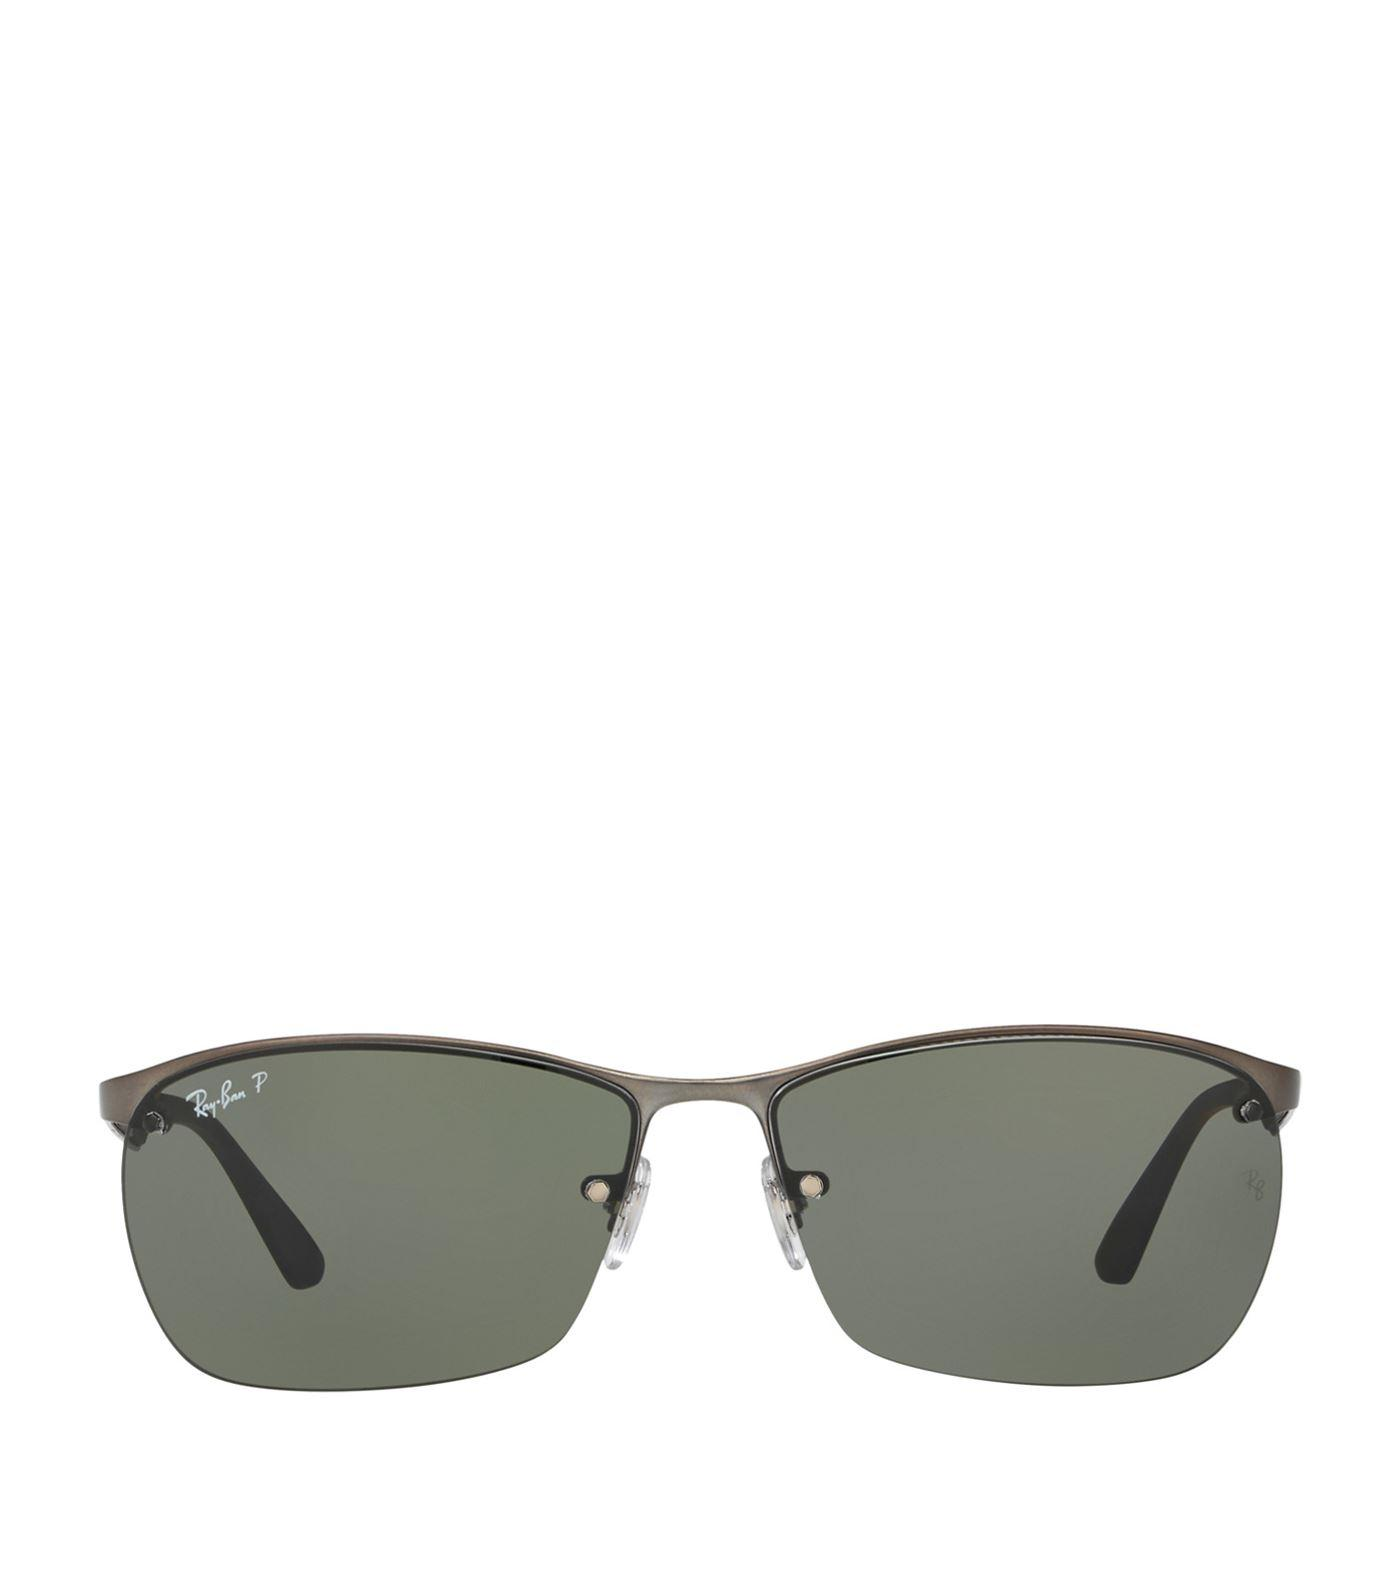 c5de65137c Ray Ban Ray-Ban Polarized Sunglasses